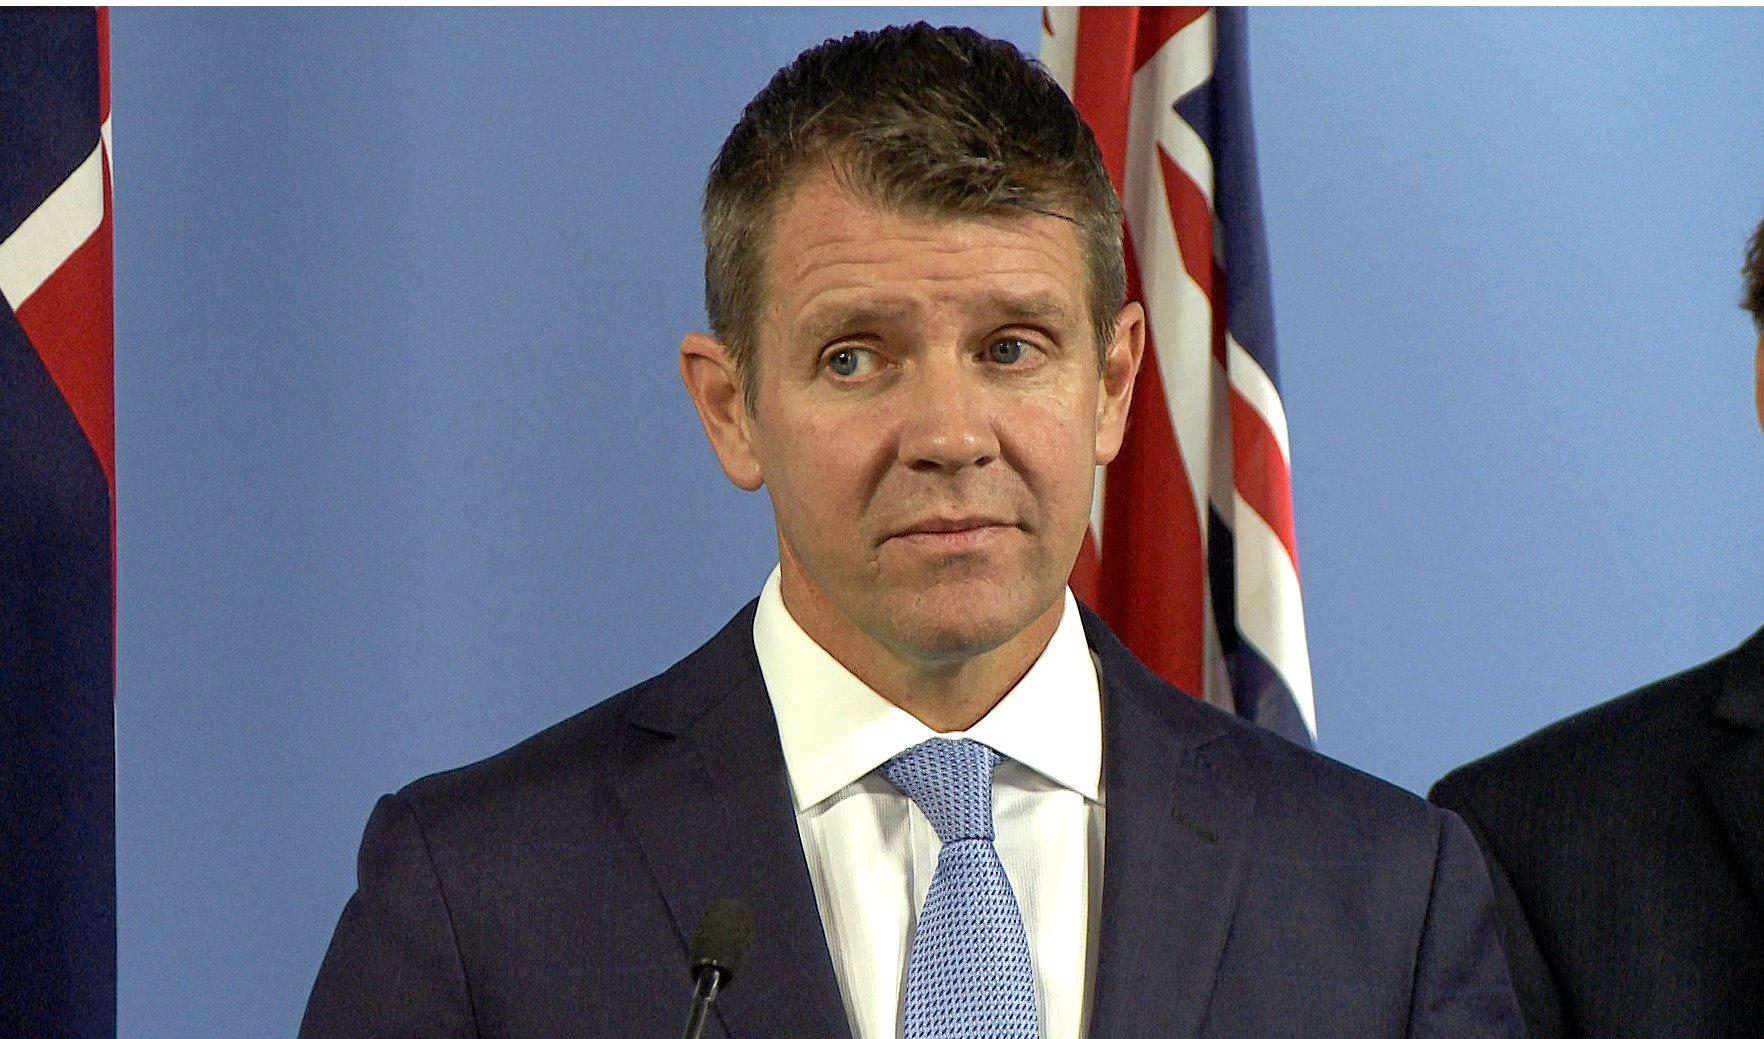 NSW Premier Mike Baird has been called on to give ICAC more power to prosecute corrupt politicians.